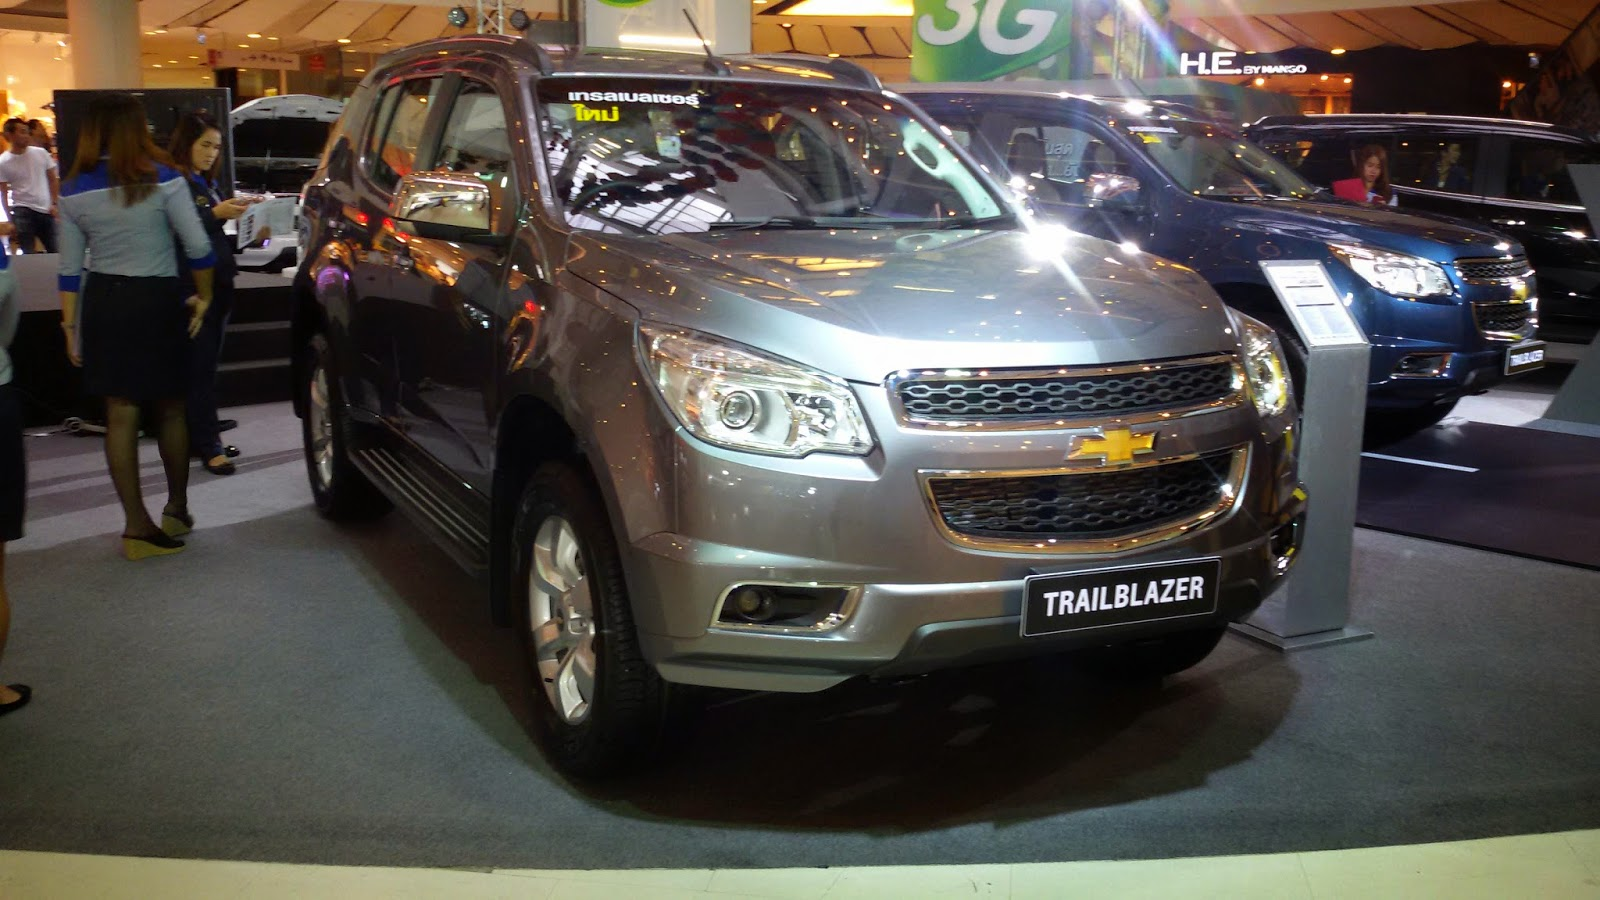 2015 Chevy Trailblazer >> 2015 Chevrolet Trailblazer Suv In Images